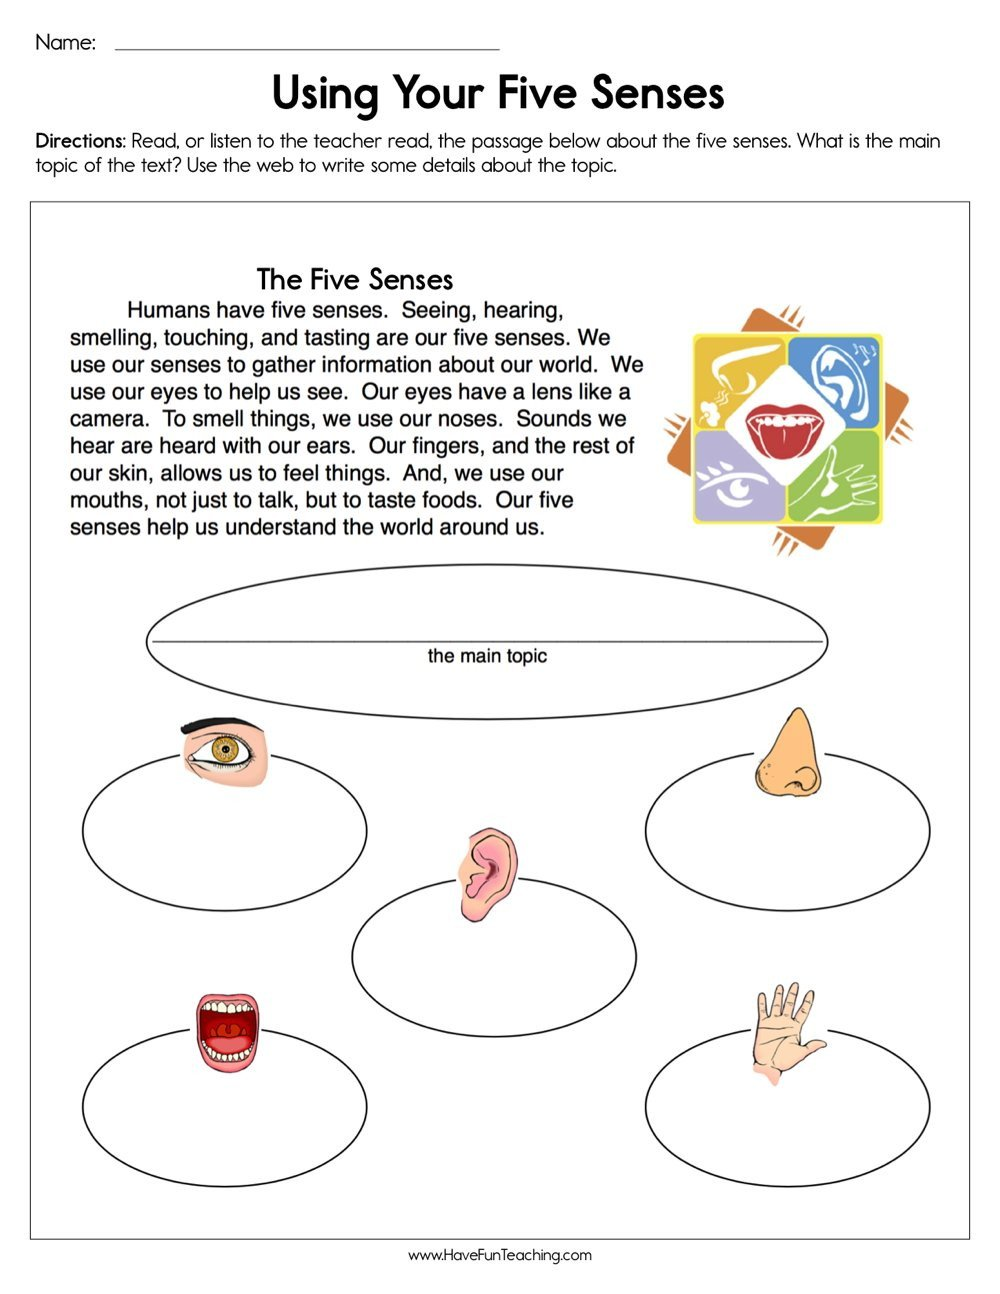 The Five Senses Worksheets Using Your Five Senses Worksheet